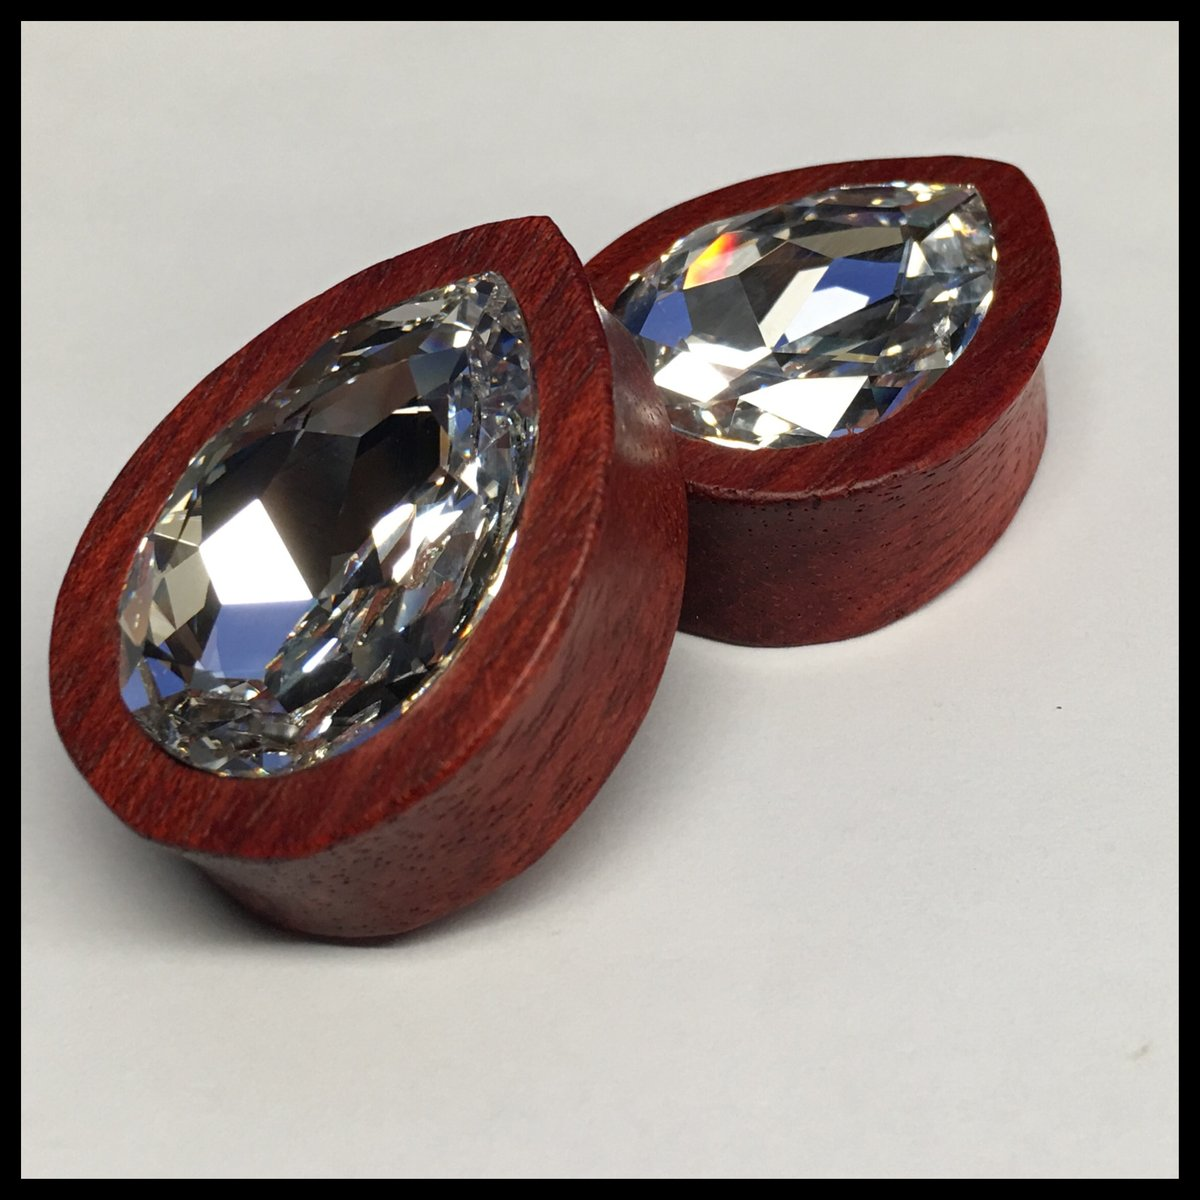 Bloodwood Large Swarovski Crystal Teardrop Plugs